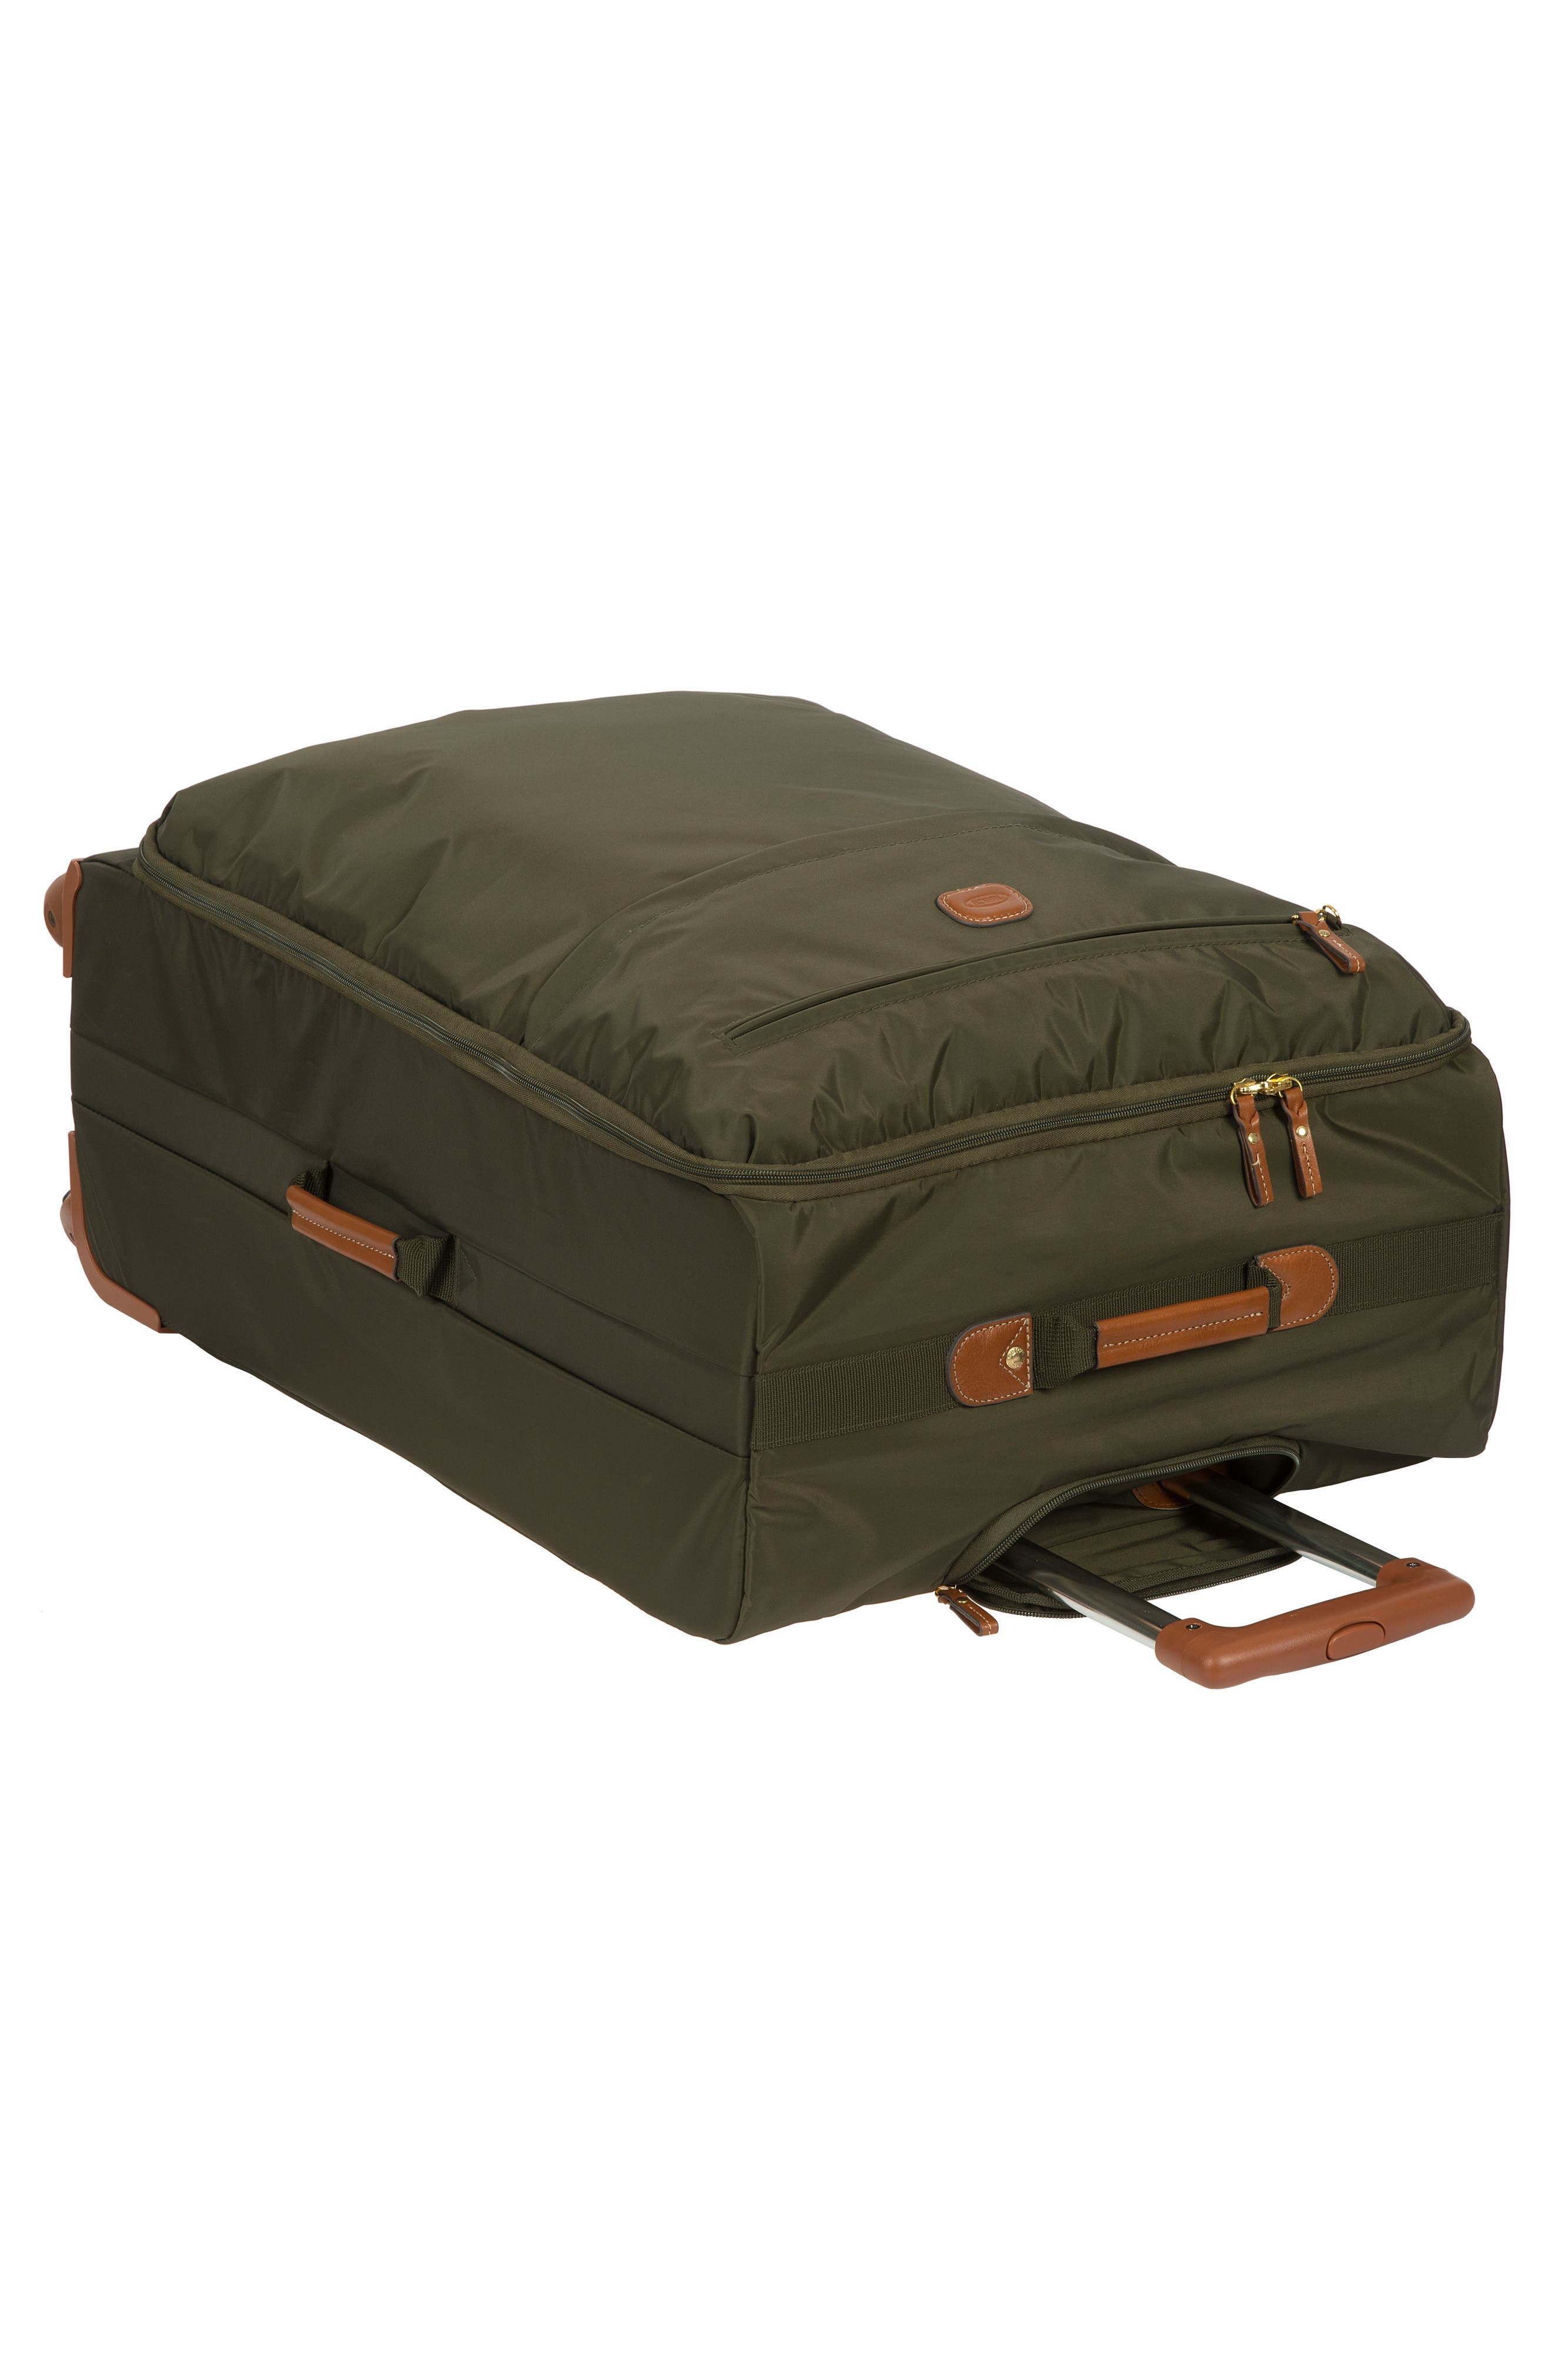 X-Bag 30-Inch Spinner Suitcase,                             Alternate thumbnail 13, color,                             OLIVE